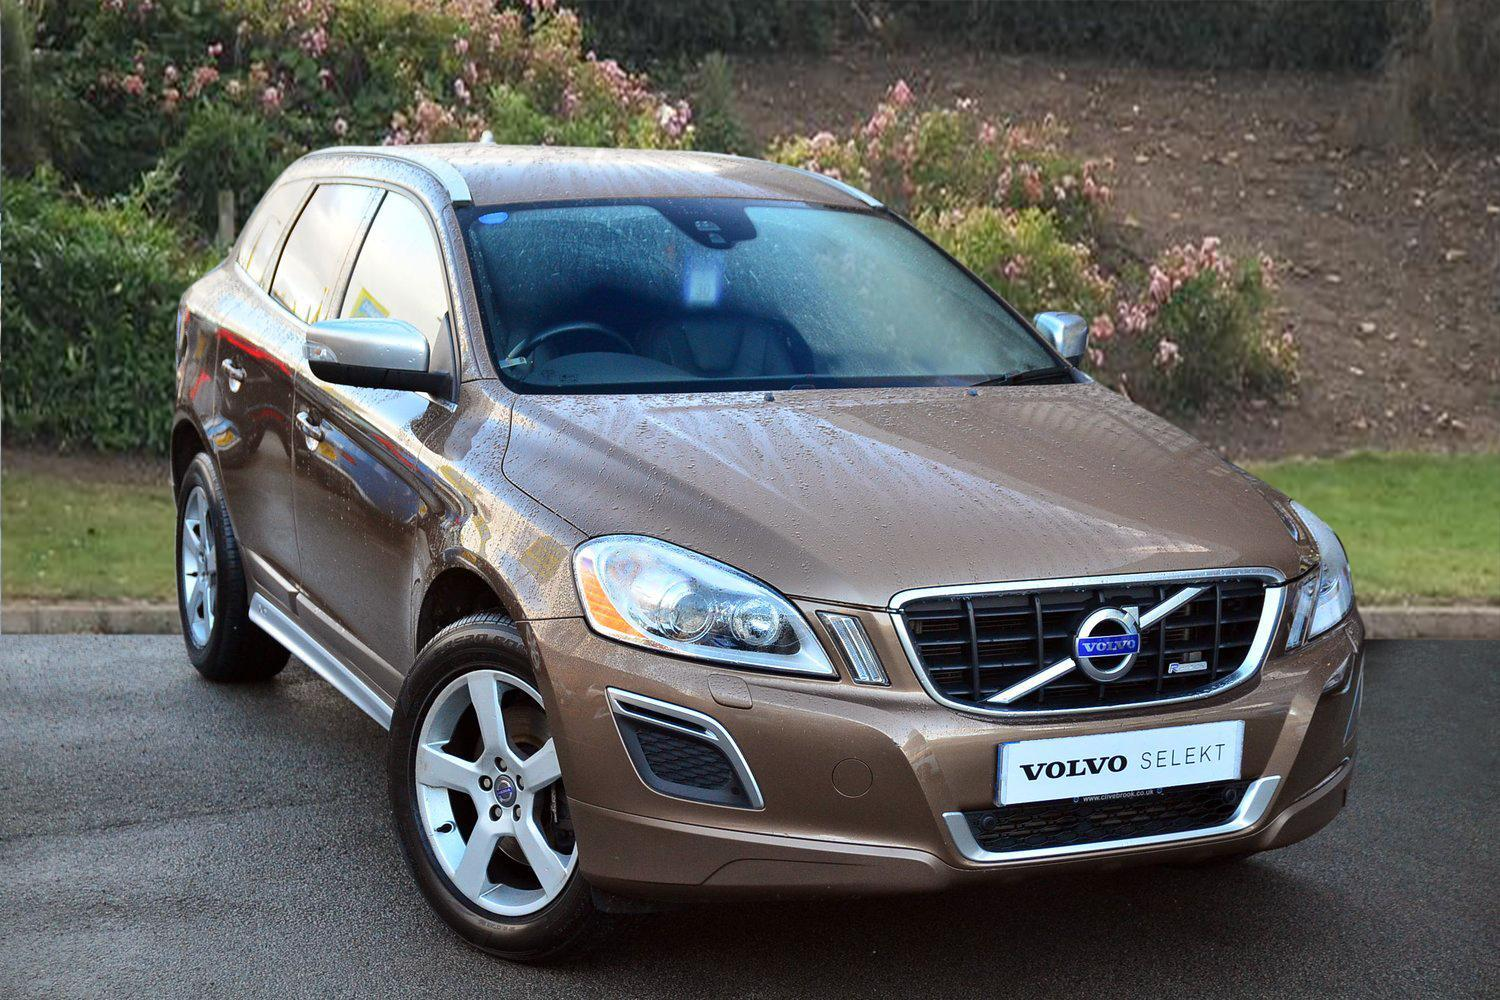 used volvo xc60 d5 215 r design 5dr awd geartronic diesel estate for sale bristol street motors. Black Bedroom Furniture Sets. Home Design Ideas